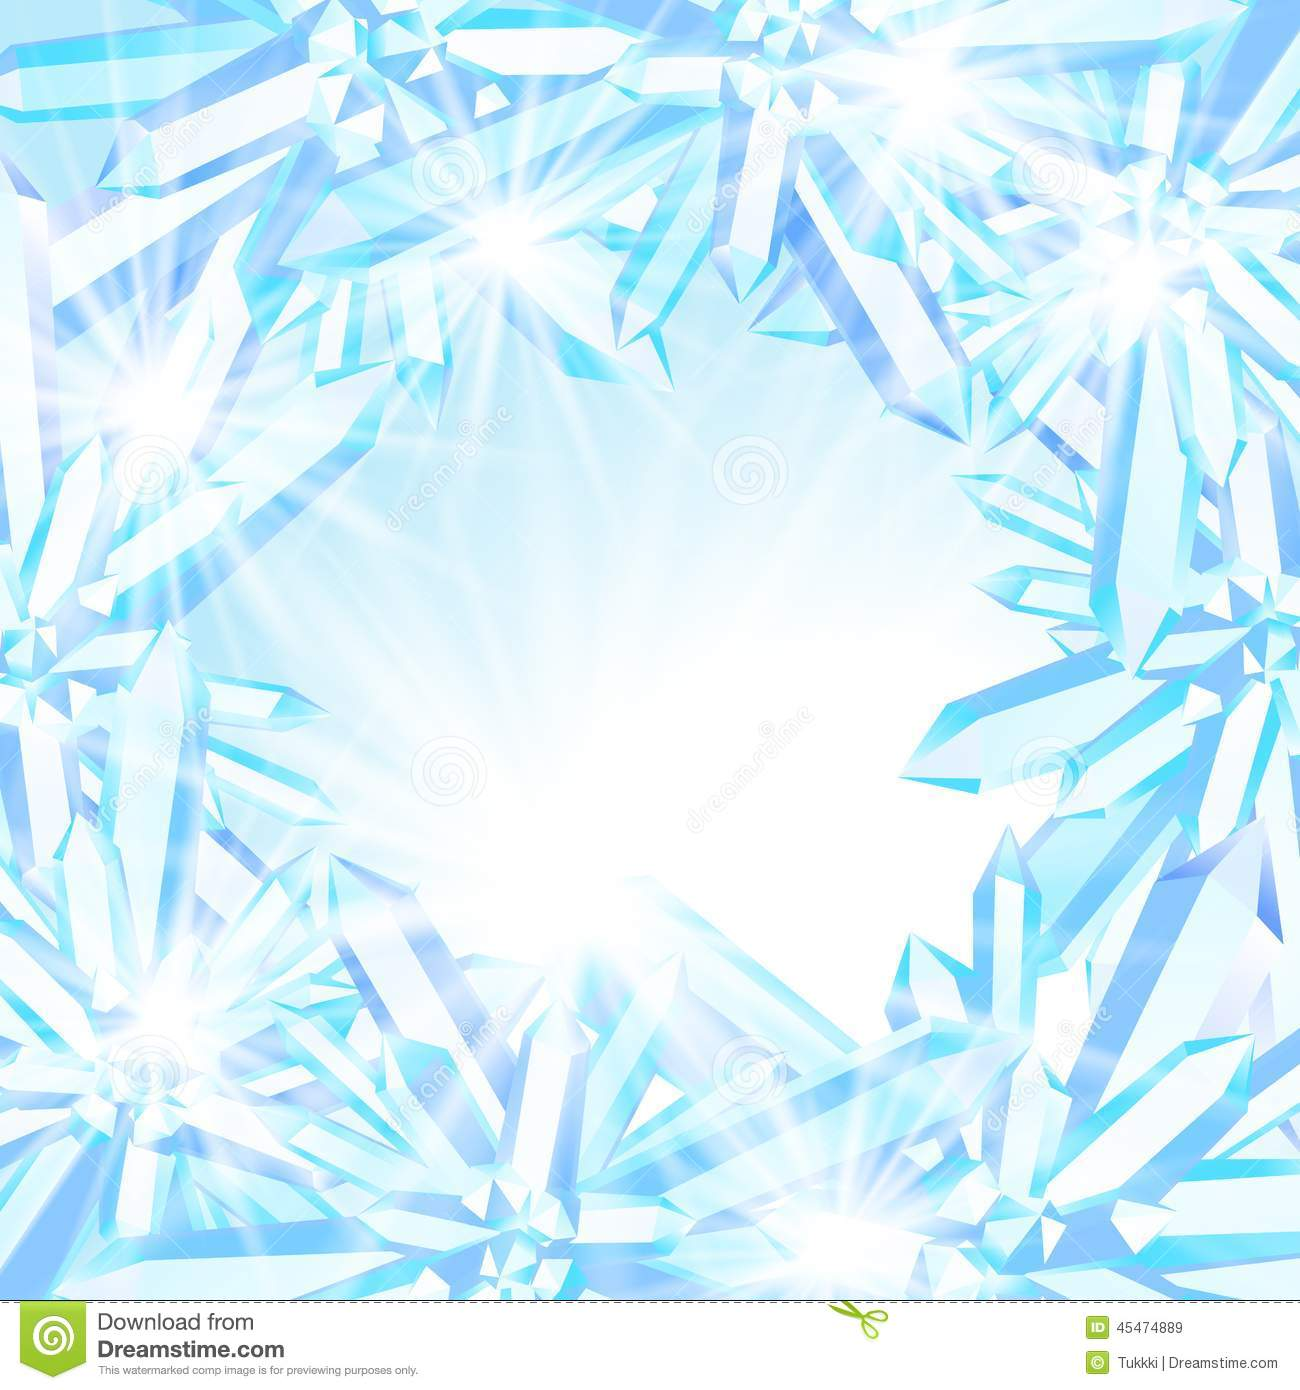 Ice Cream Background Sparking Shiny Decoration Free Vector: Sparkling Ice Crystals Stock Vector